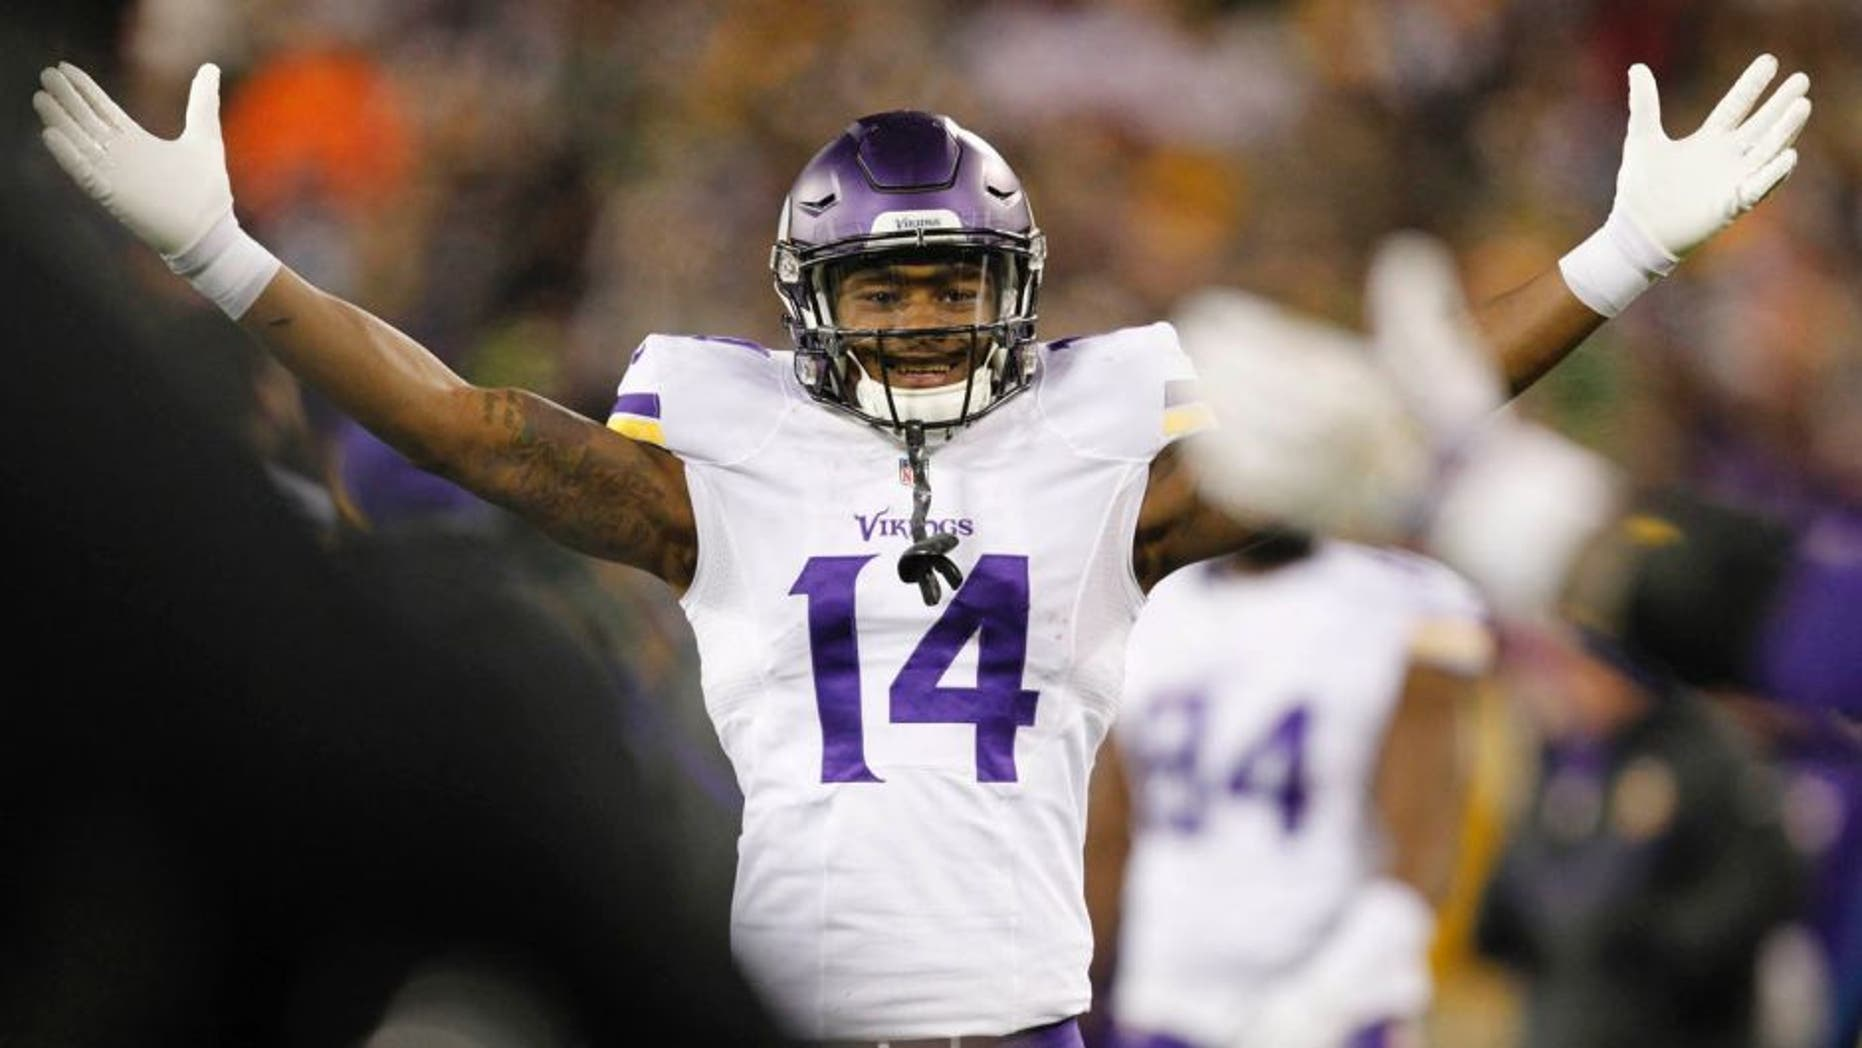 Sunday, Jan. 3: The Minnesota Vikings' Stefon Diggs celebrates during the second half against the Green Bay Packers in Green Bay, Wis. The Vikings won 20-13.